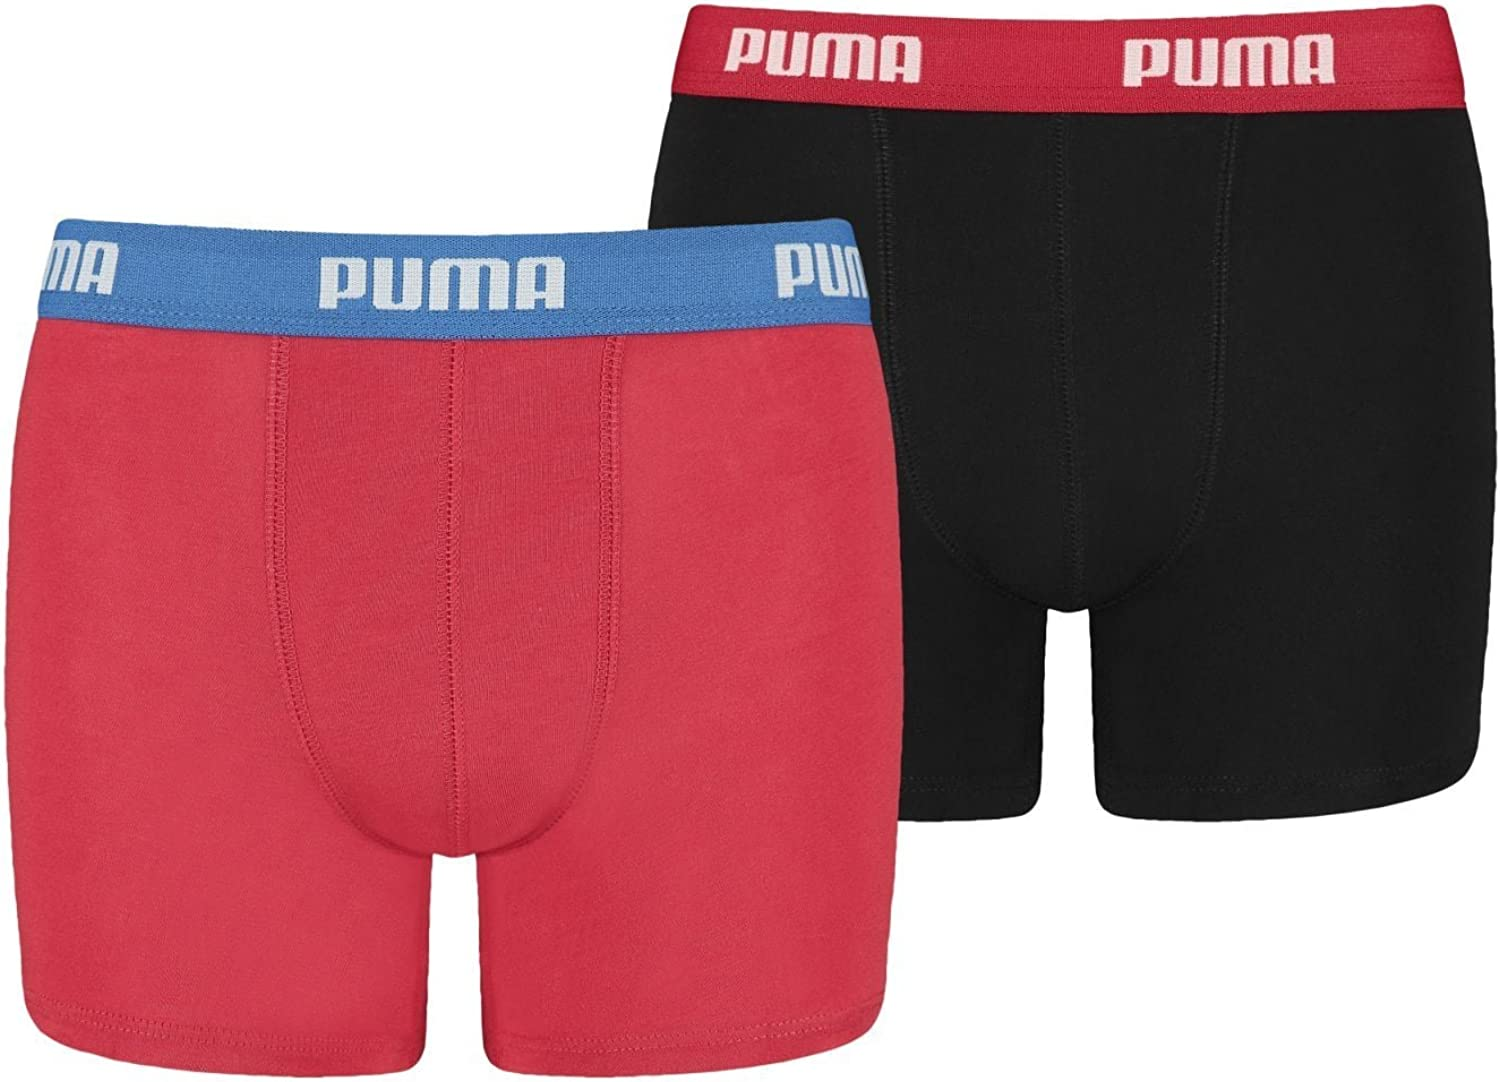 PUMA Boys Boxer Shorts Pack of 2